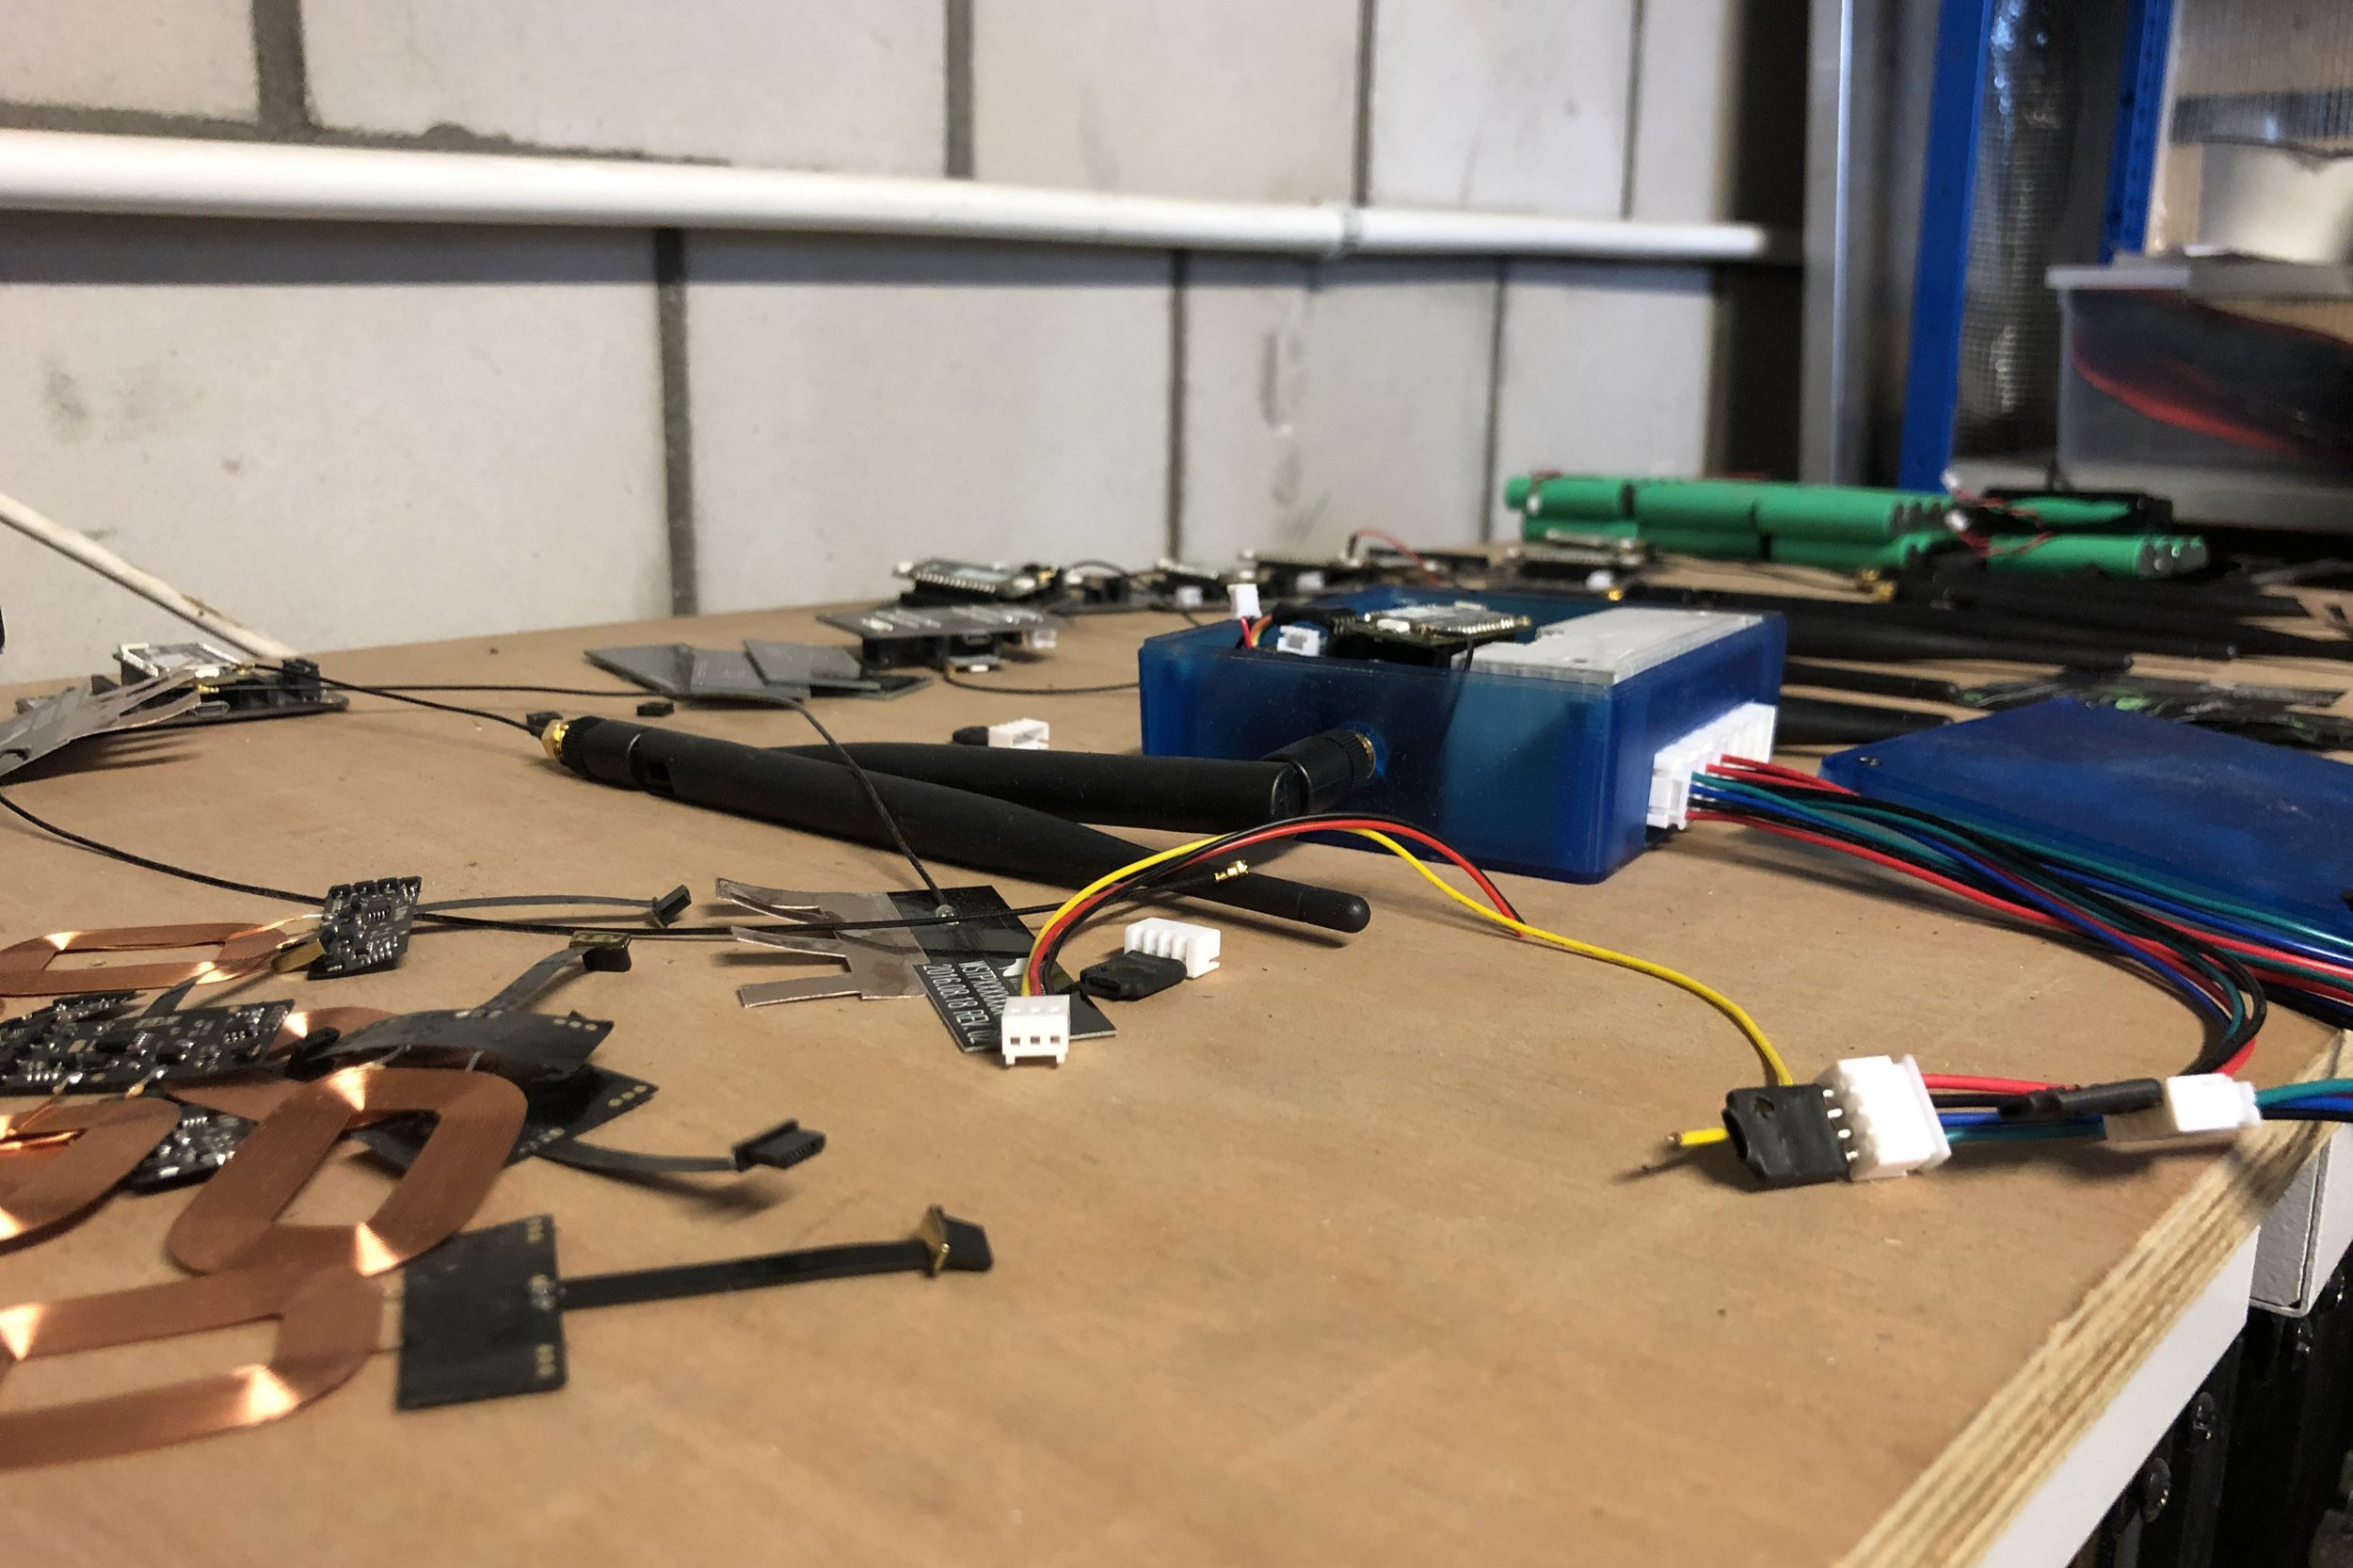 anticipate future developments - In our LAB we test, prototype and figure out how new technologies can be implemented.